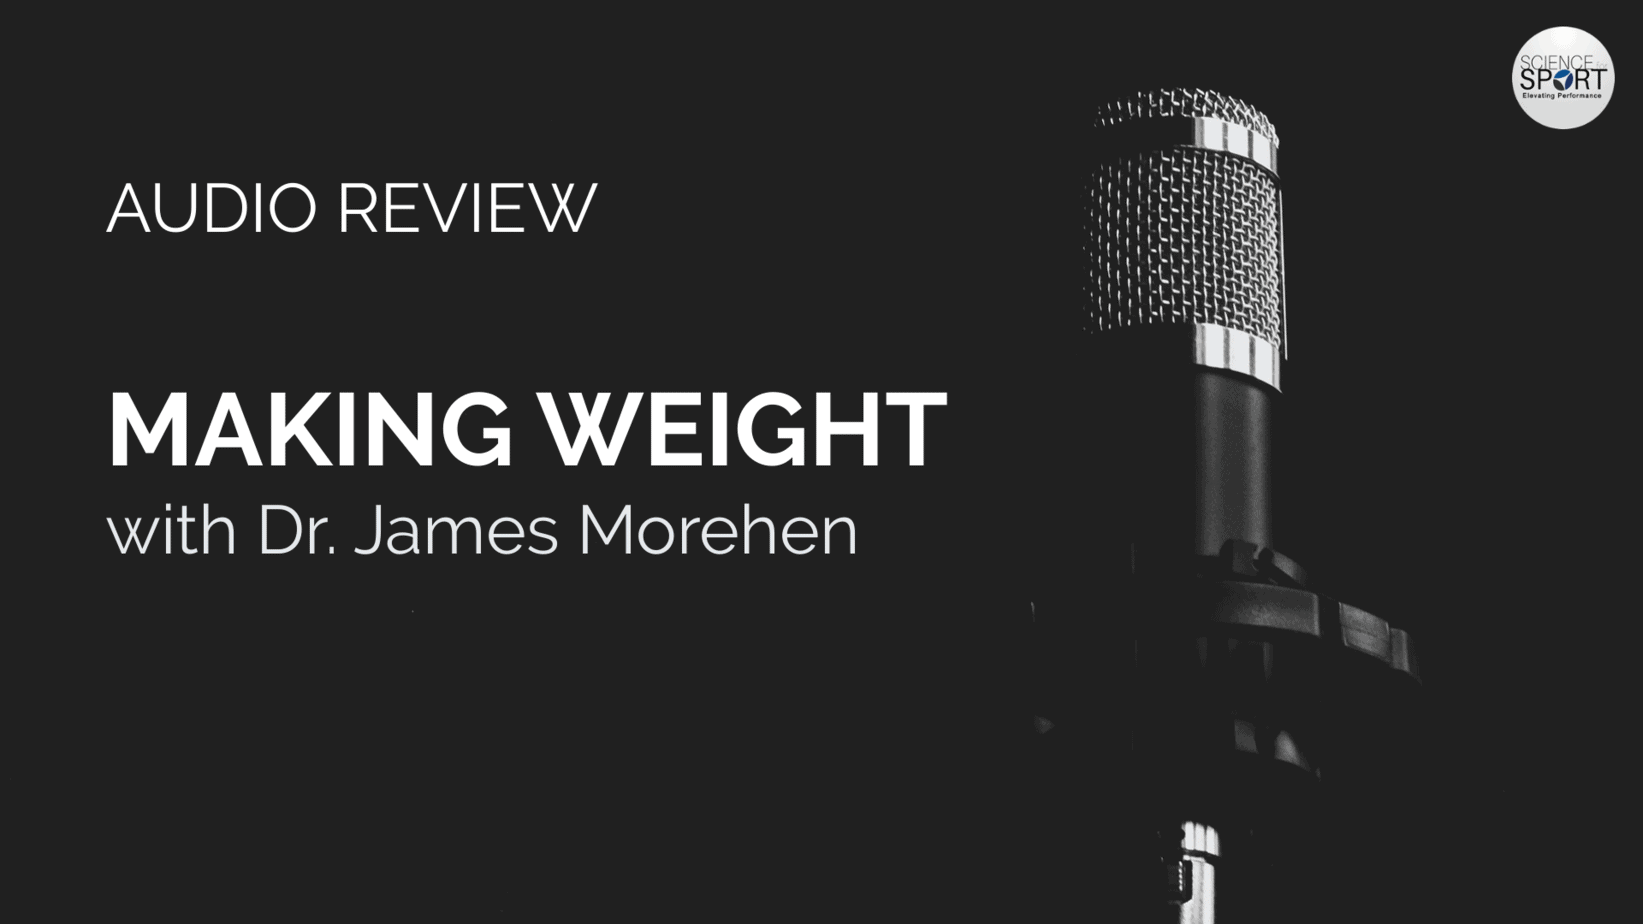 Making Weight - Audio Review